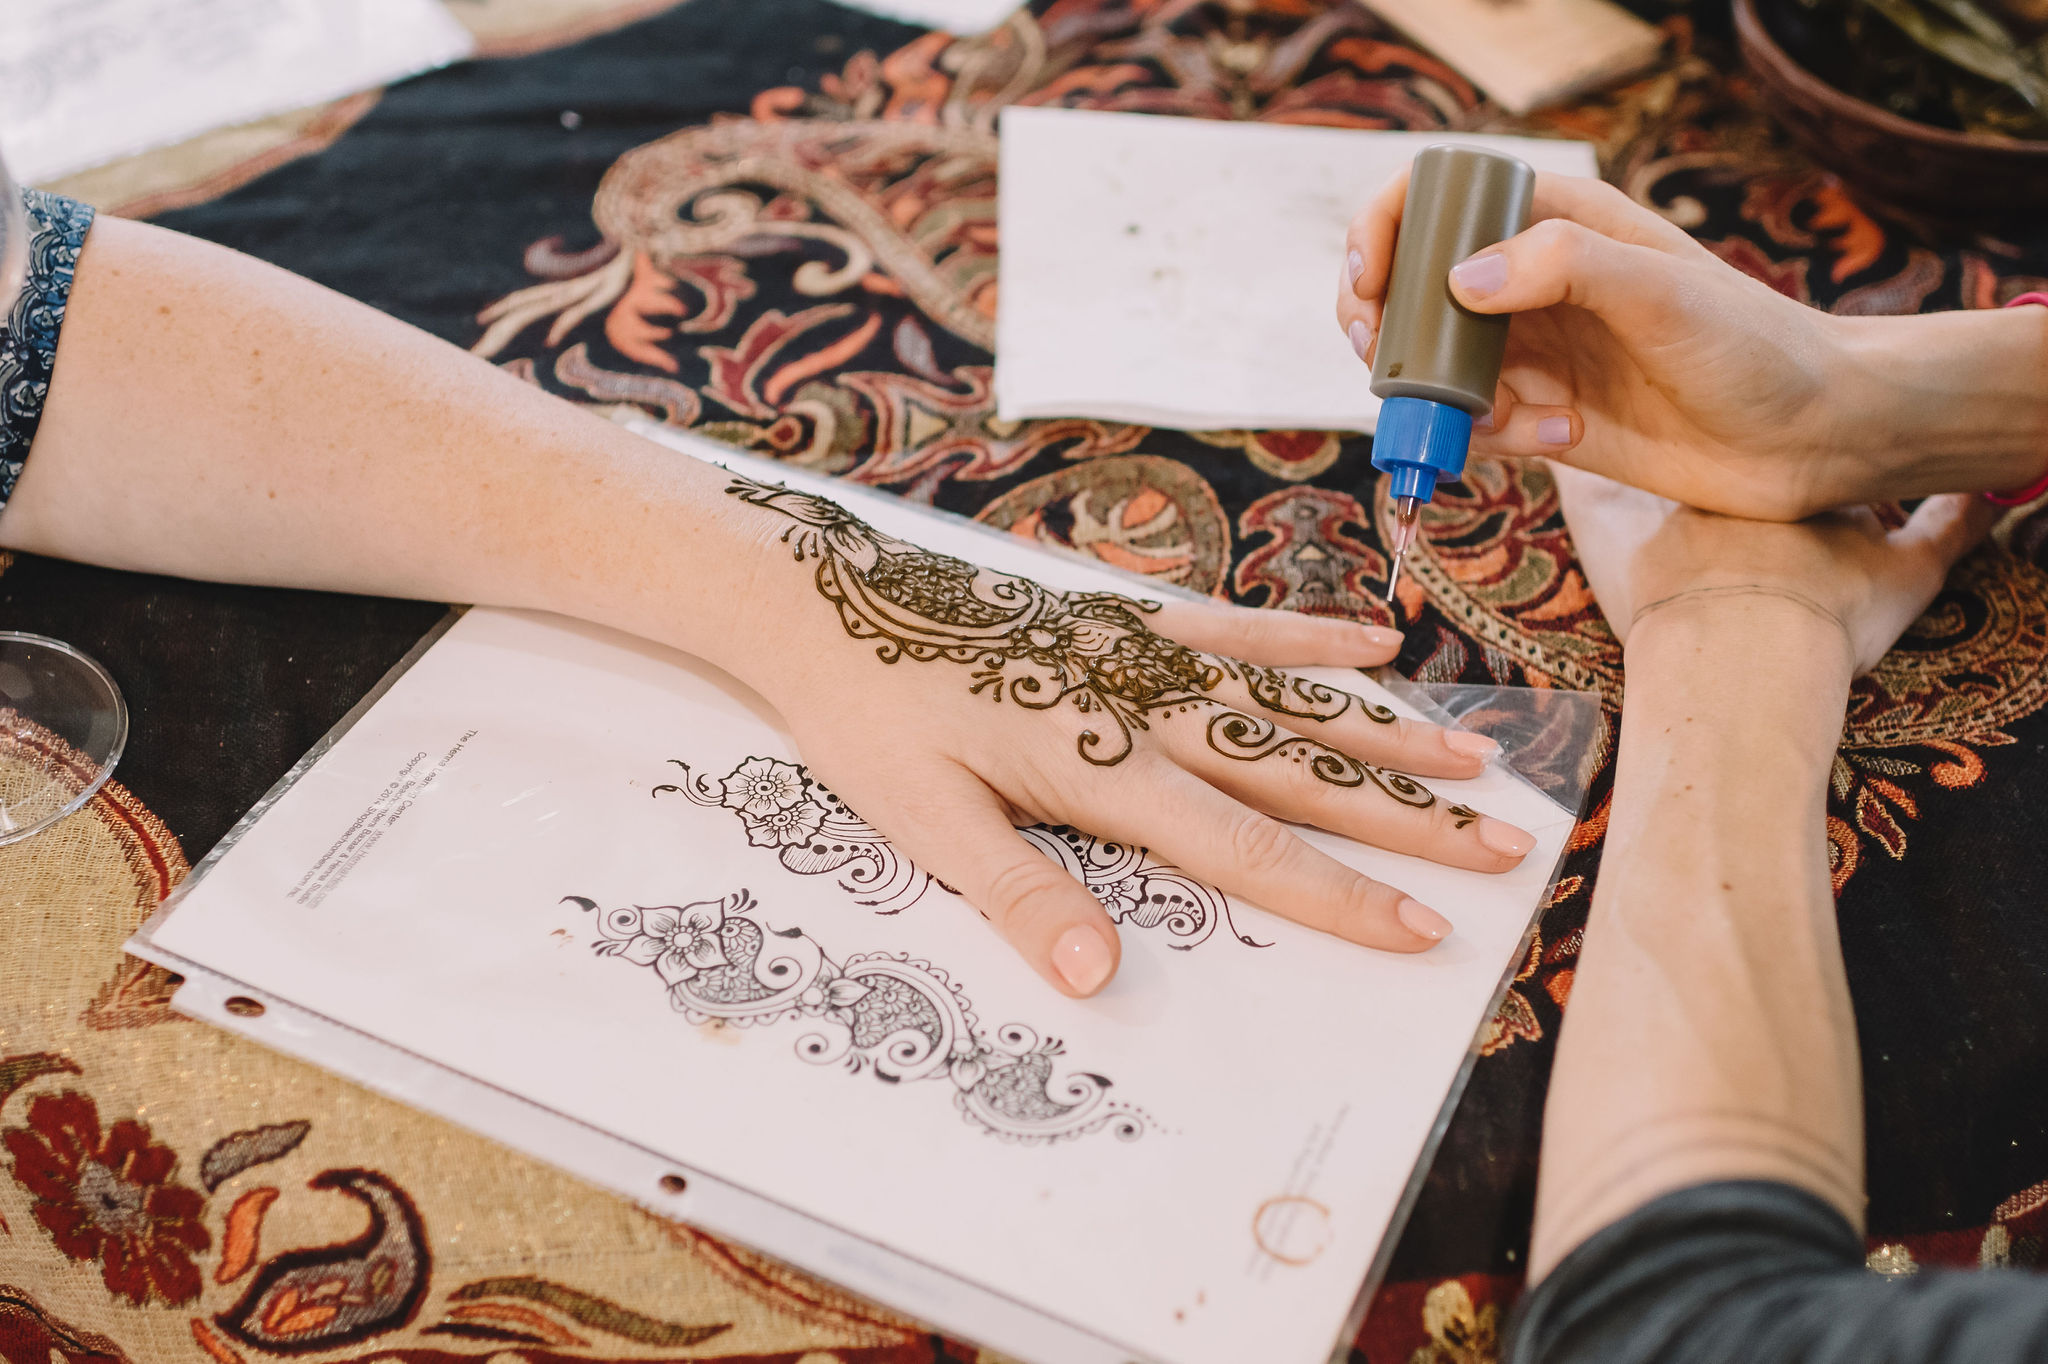 Laura Sheffield of New Orleans Henna created beautiful Henna art on wedding guests' hands.